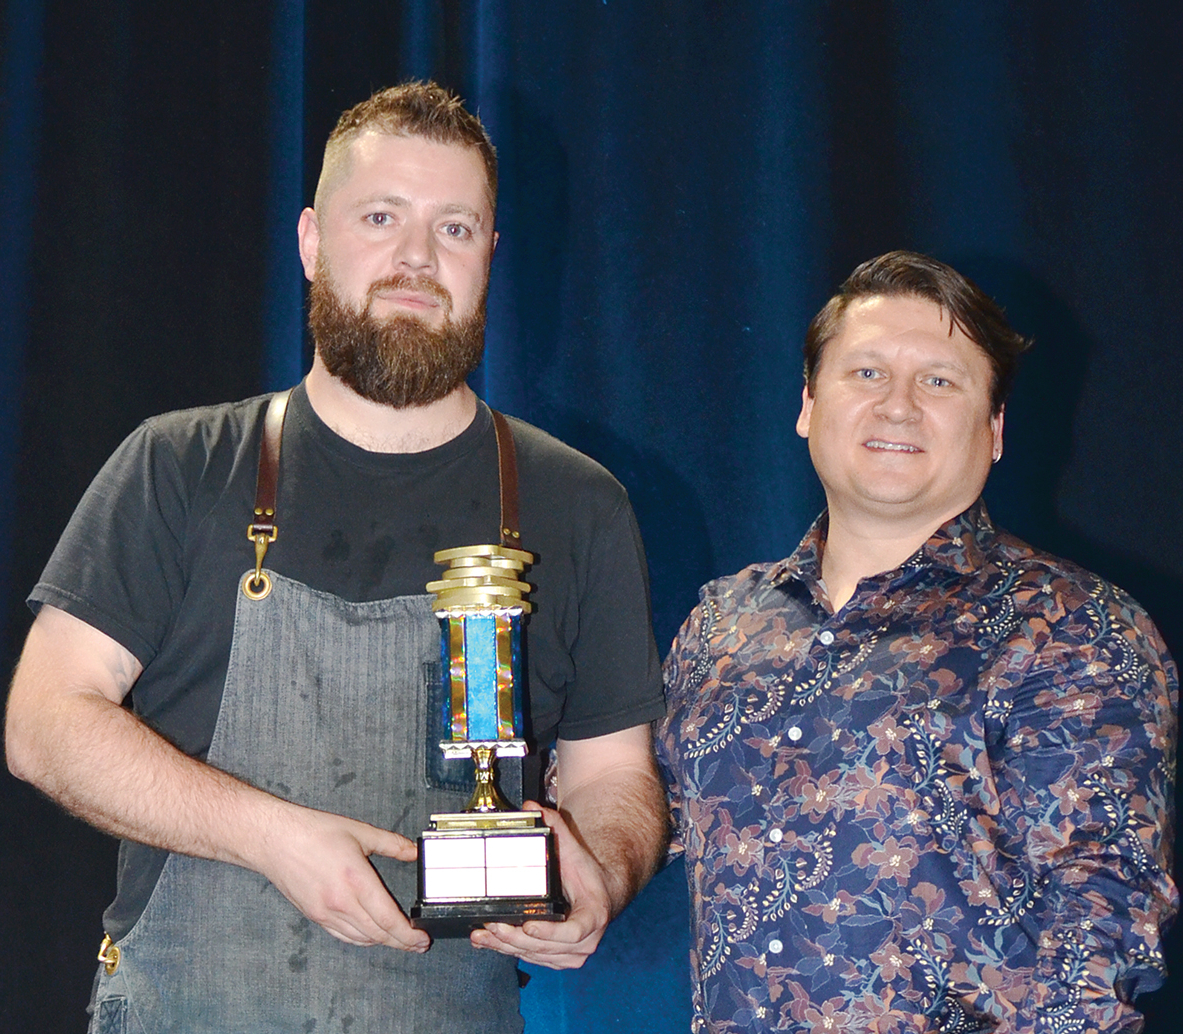 Justin Champagne receives the trophy for best sandwich from Jeff Bond at this year's Hopewell Eating Disorder Centre's Breaking Bread Breaking Stigma competition.